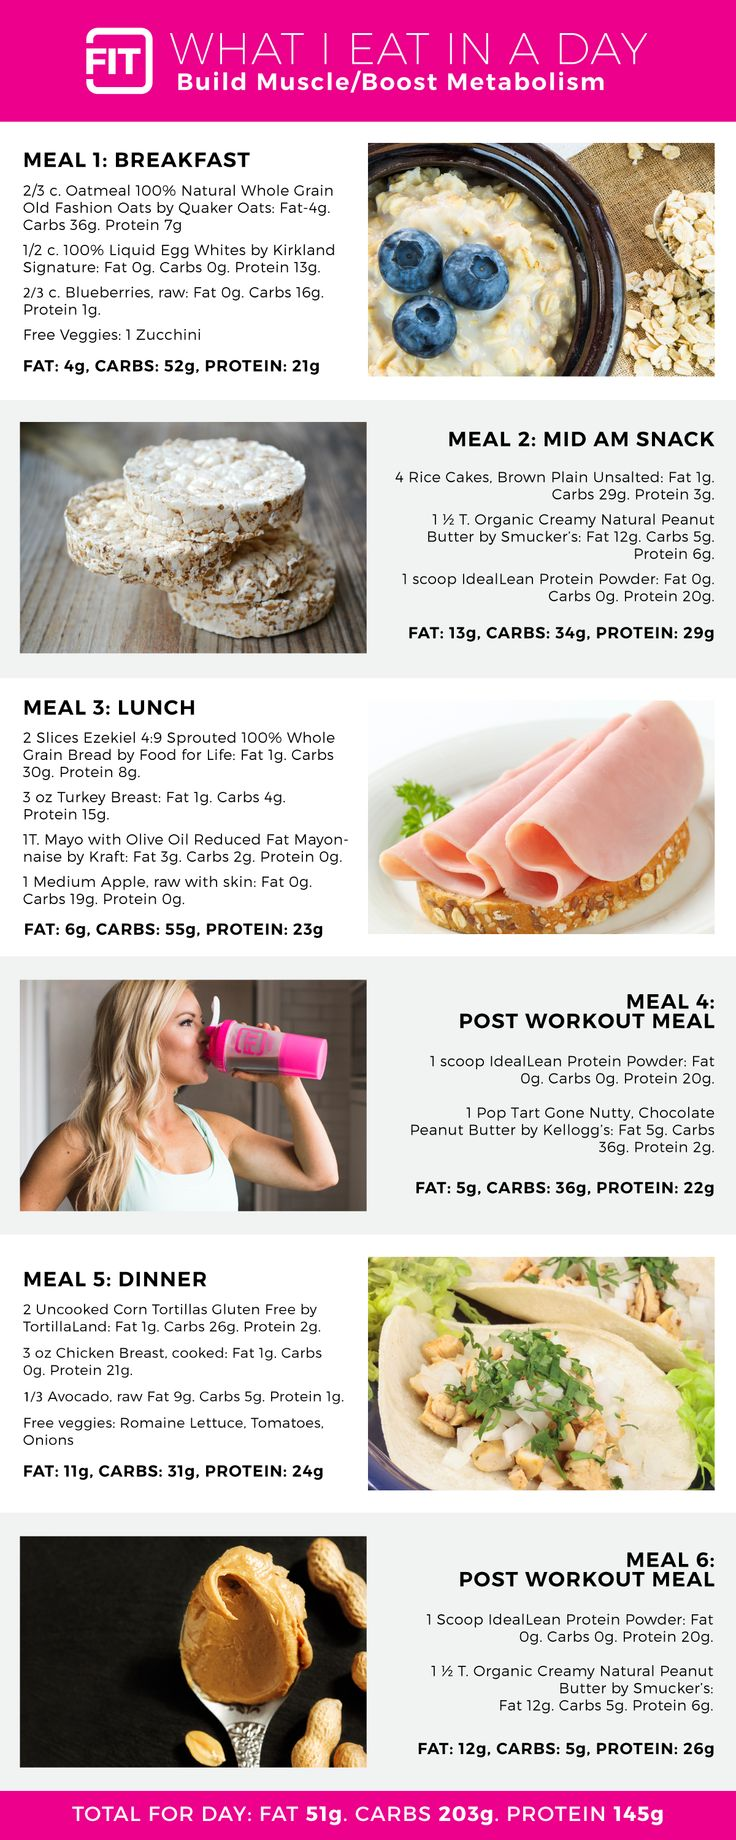 this is a sample of what trainer lindsey eats in a day to build muscle